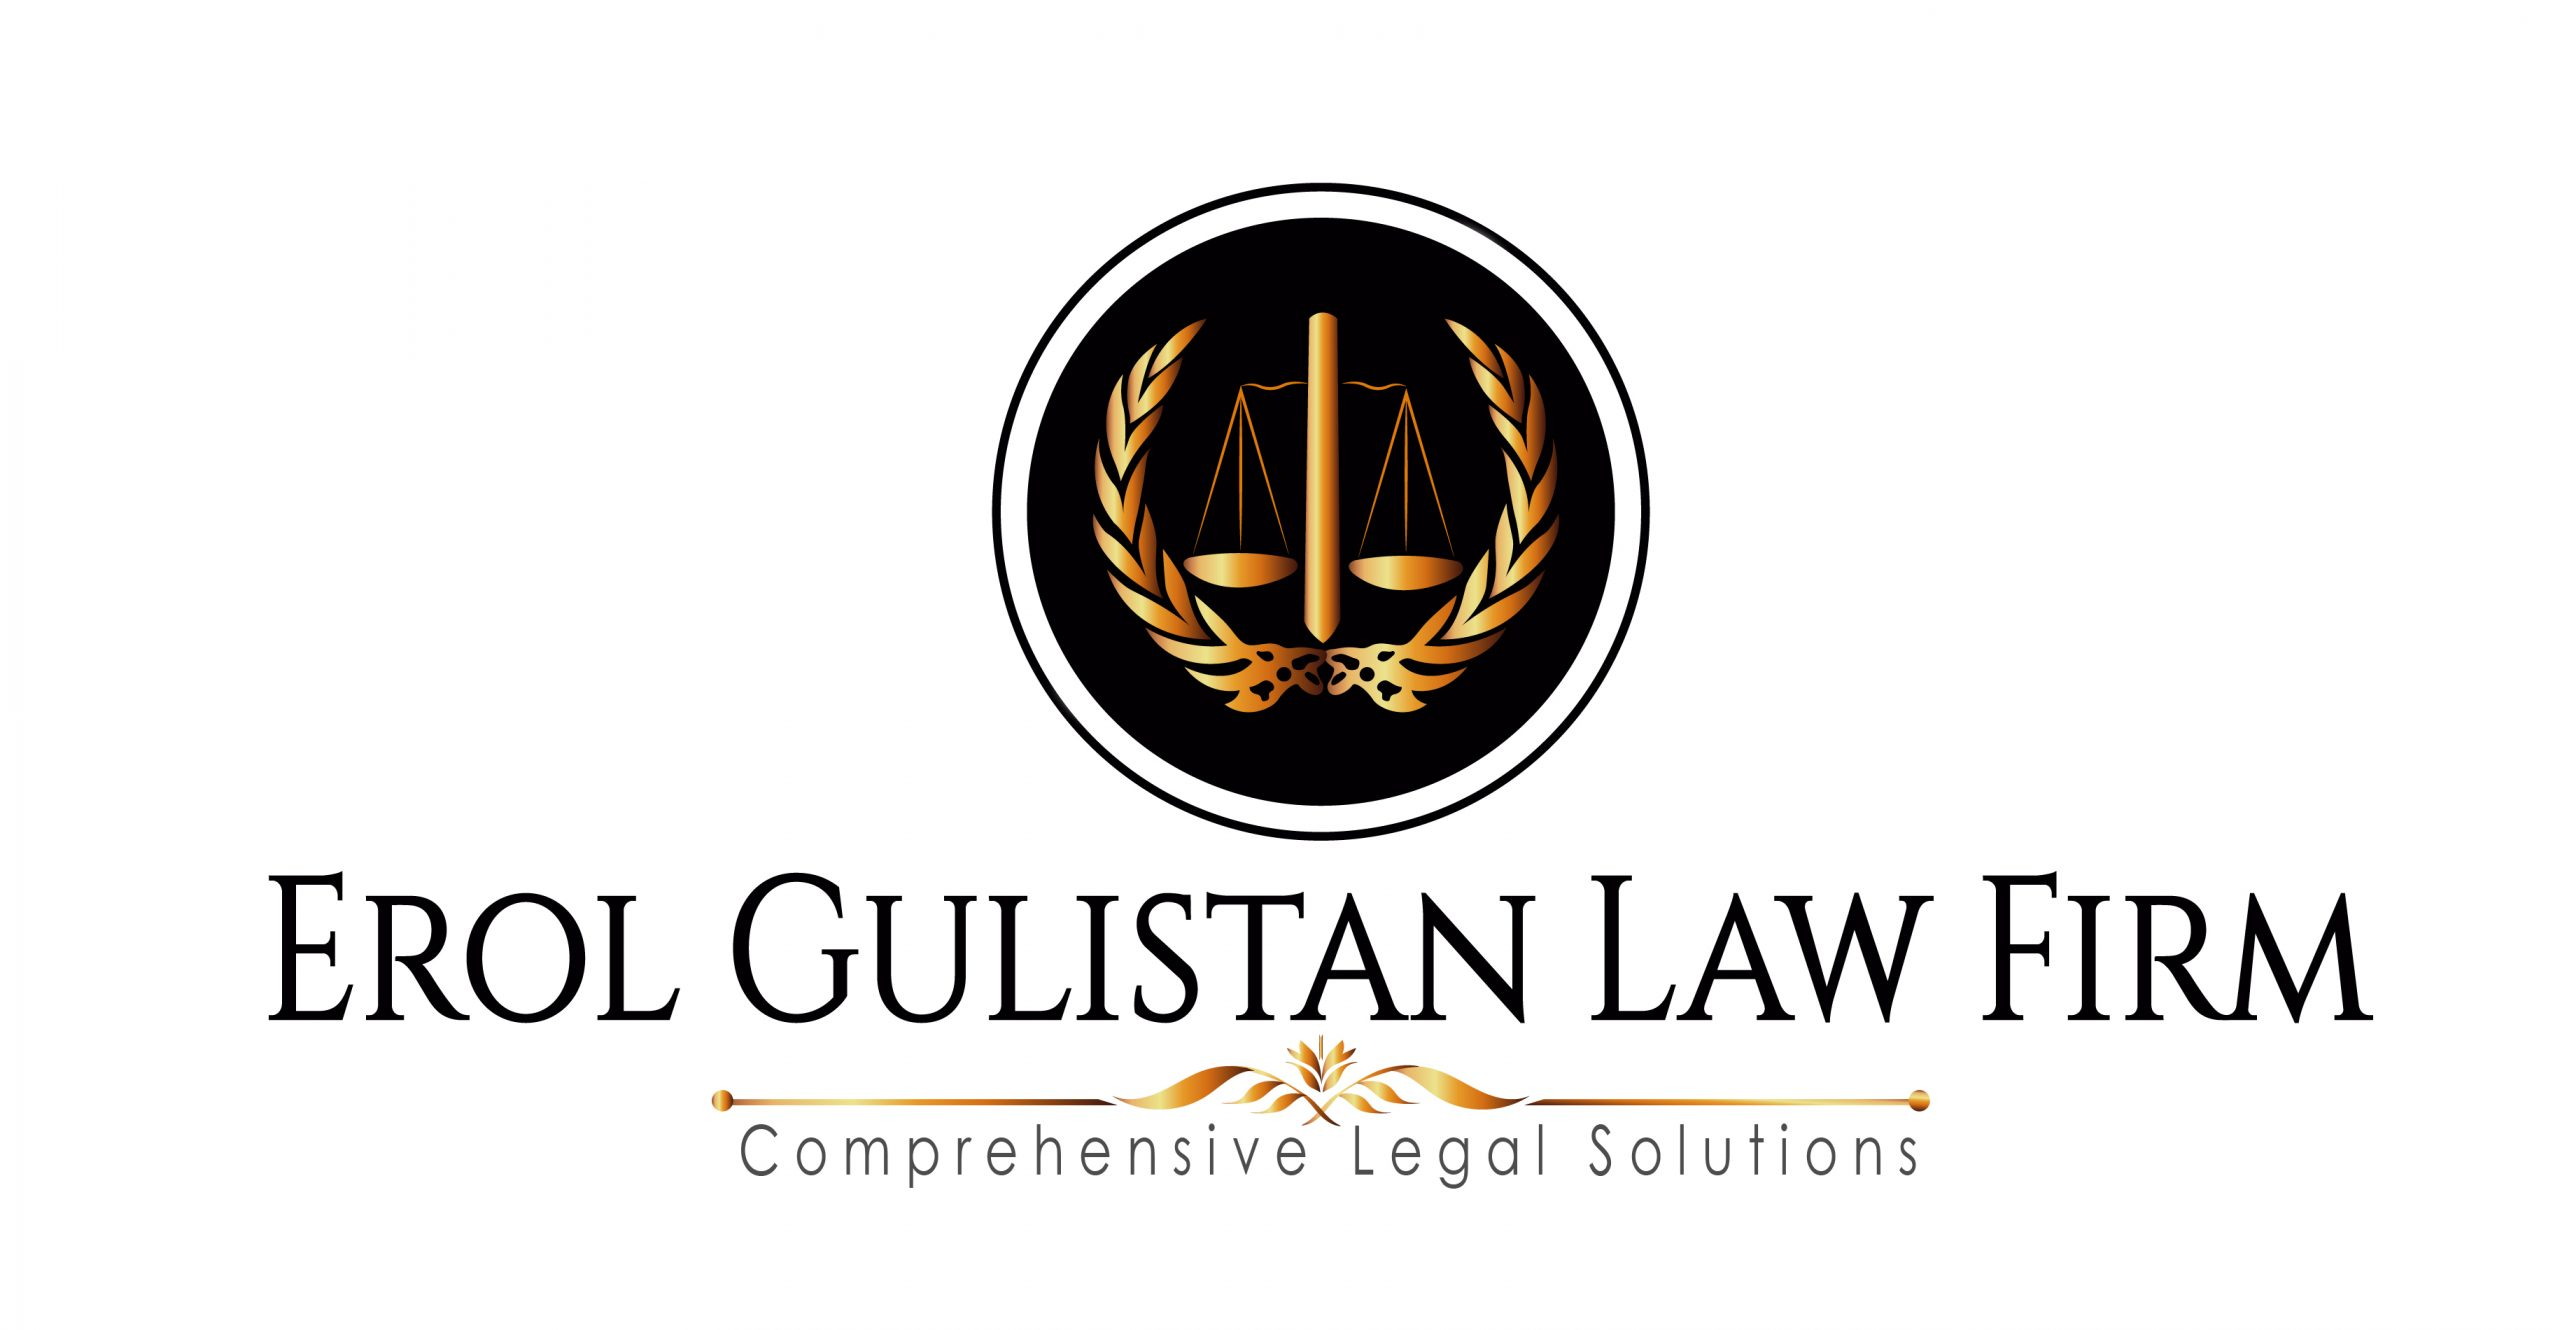 Erol Gulistan Law Firm